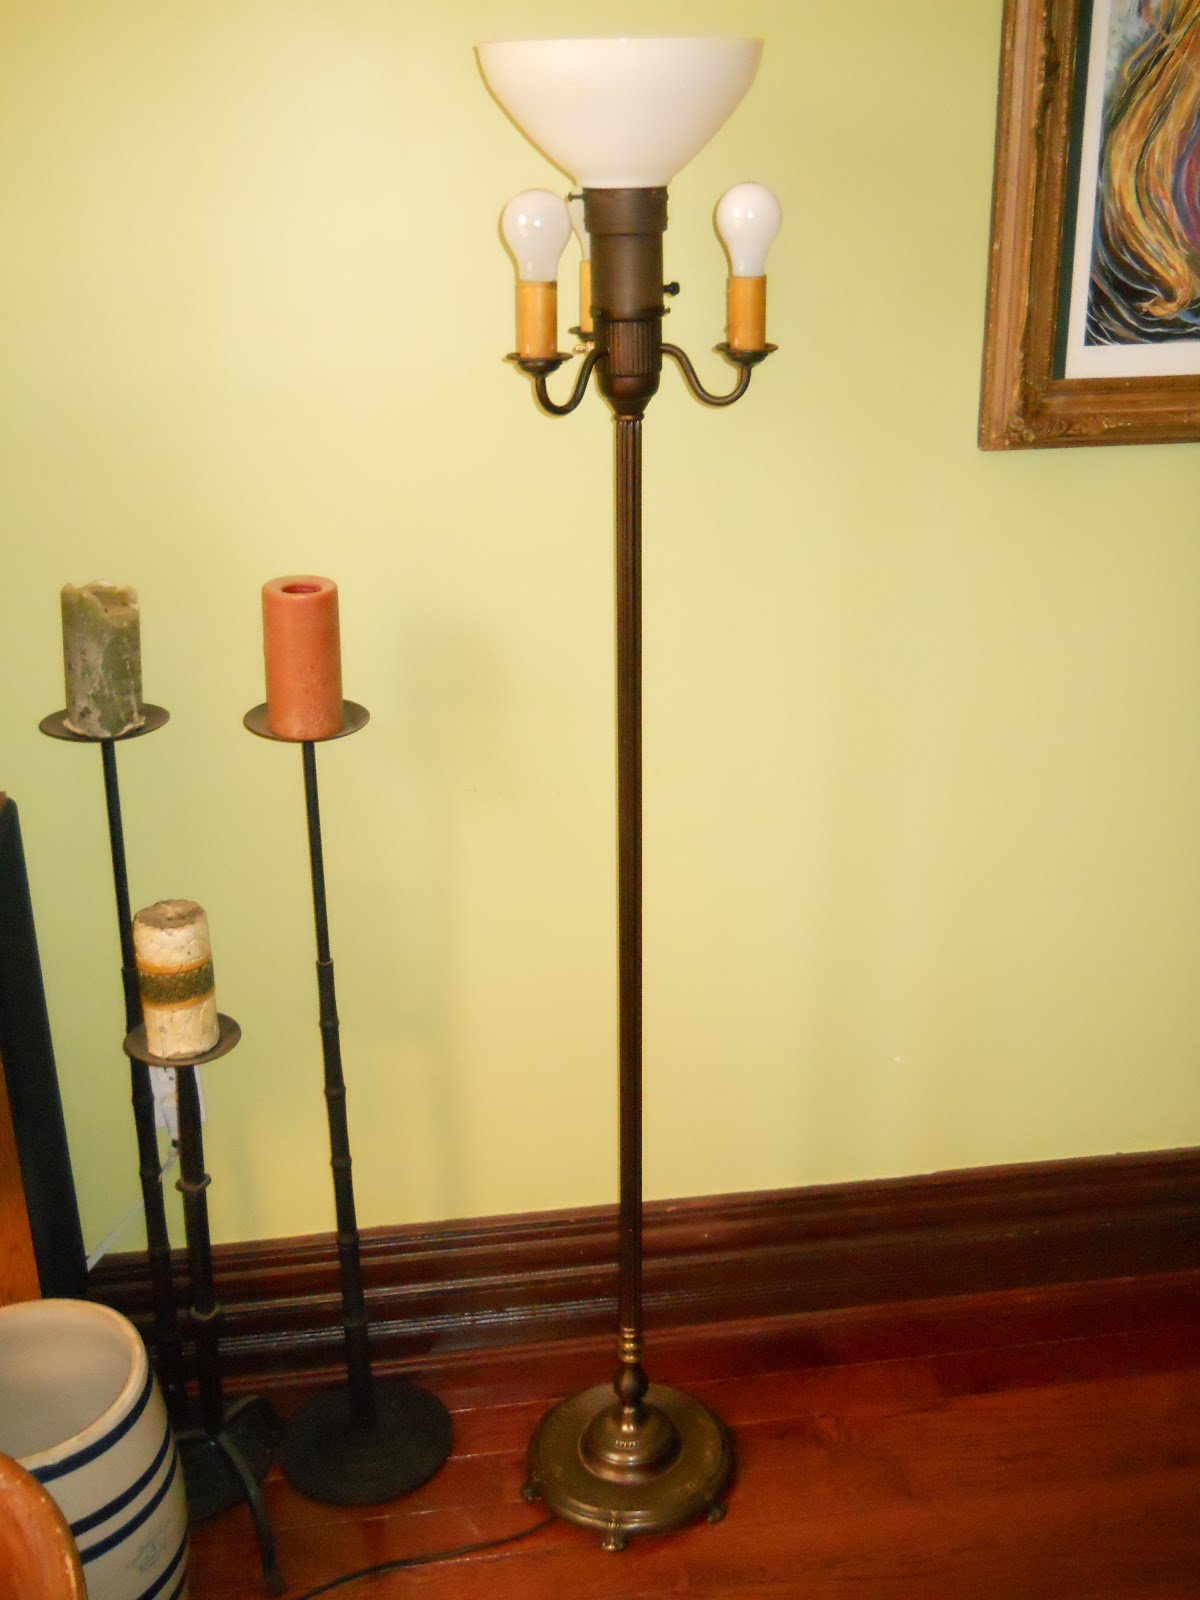 Church Key Vintage Pairpoint Dolphin Lamp Antique Floor